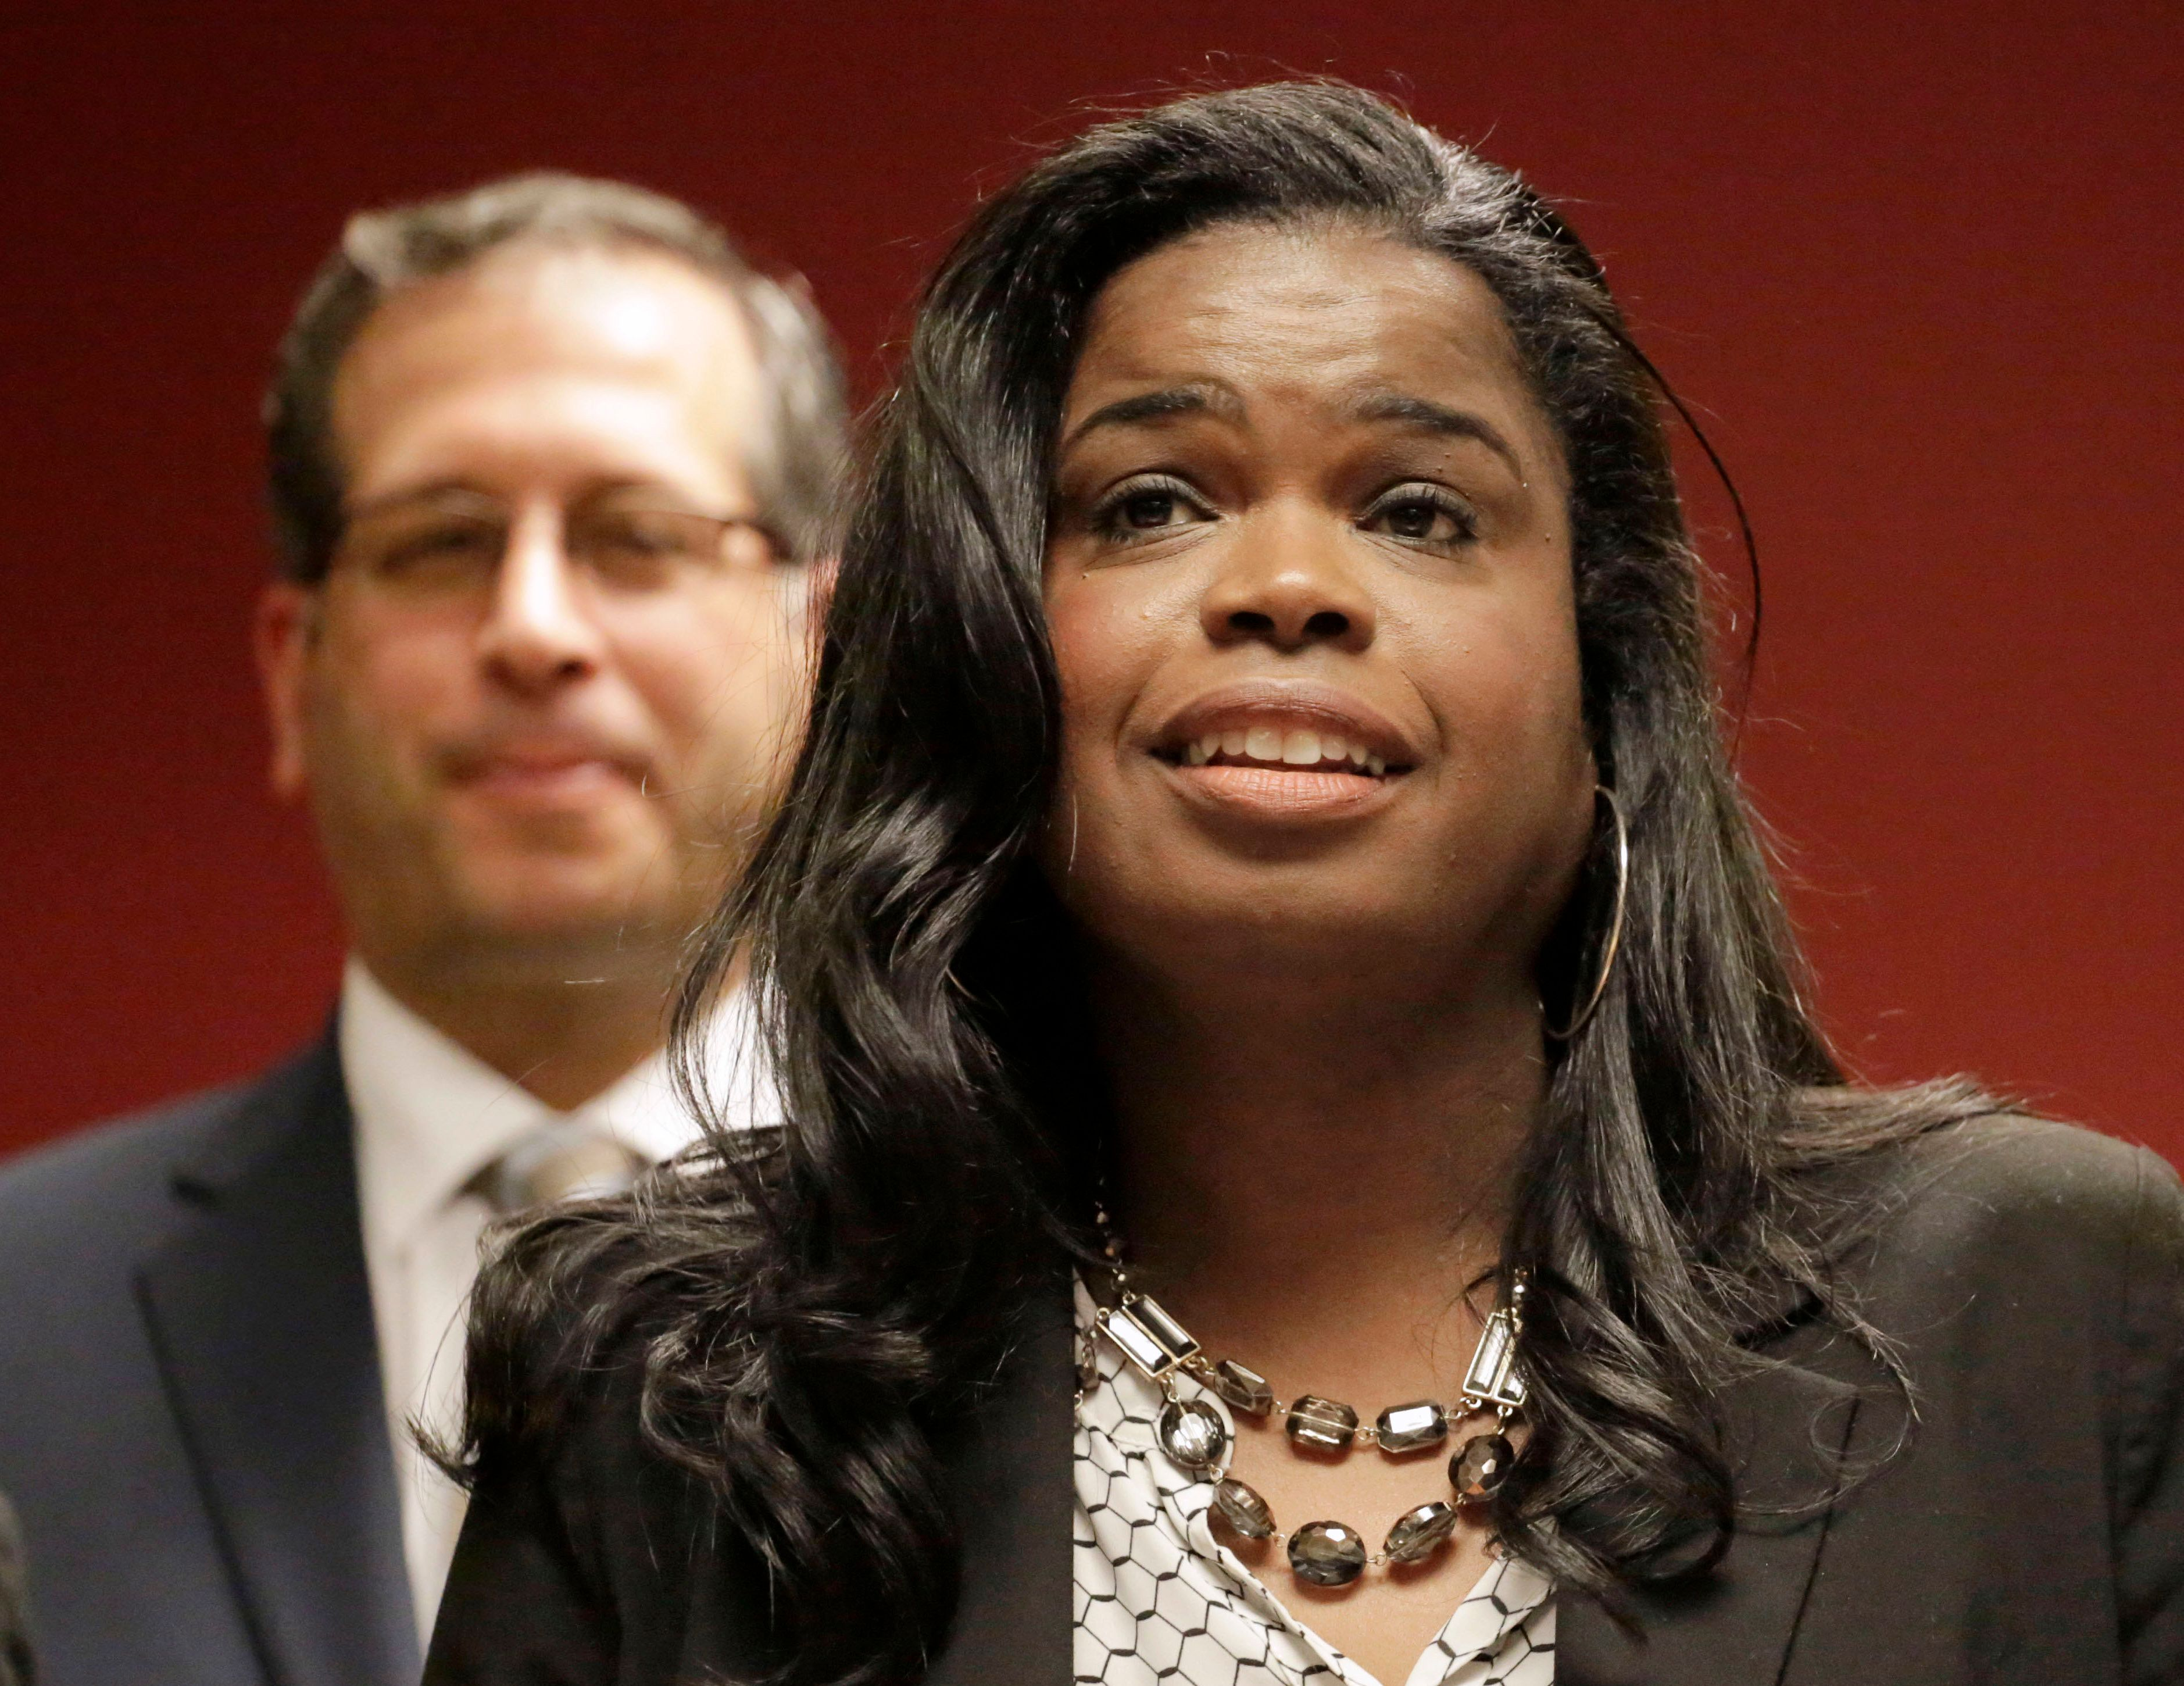 FILE - In this Dec. 2, 2015, file photo, Kim Foxx, then a candidate for Cook County state's attorney, speaks at a news conference in Chicago. Foxx, the Chicago area's top prosecutor says her office is starting a new effort to target gun crimes in city neighborhoods and revamping a branch of her office that investigates possible wrongful convictions. State's Attorney Foxx said Wednesday, March 15, 2017 that attorneys from her office are teaming up with federal prosecutors in two police districts that have some of the highest violence rates.(AP Photo/M. Spencer Green, File)